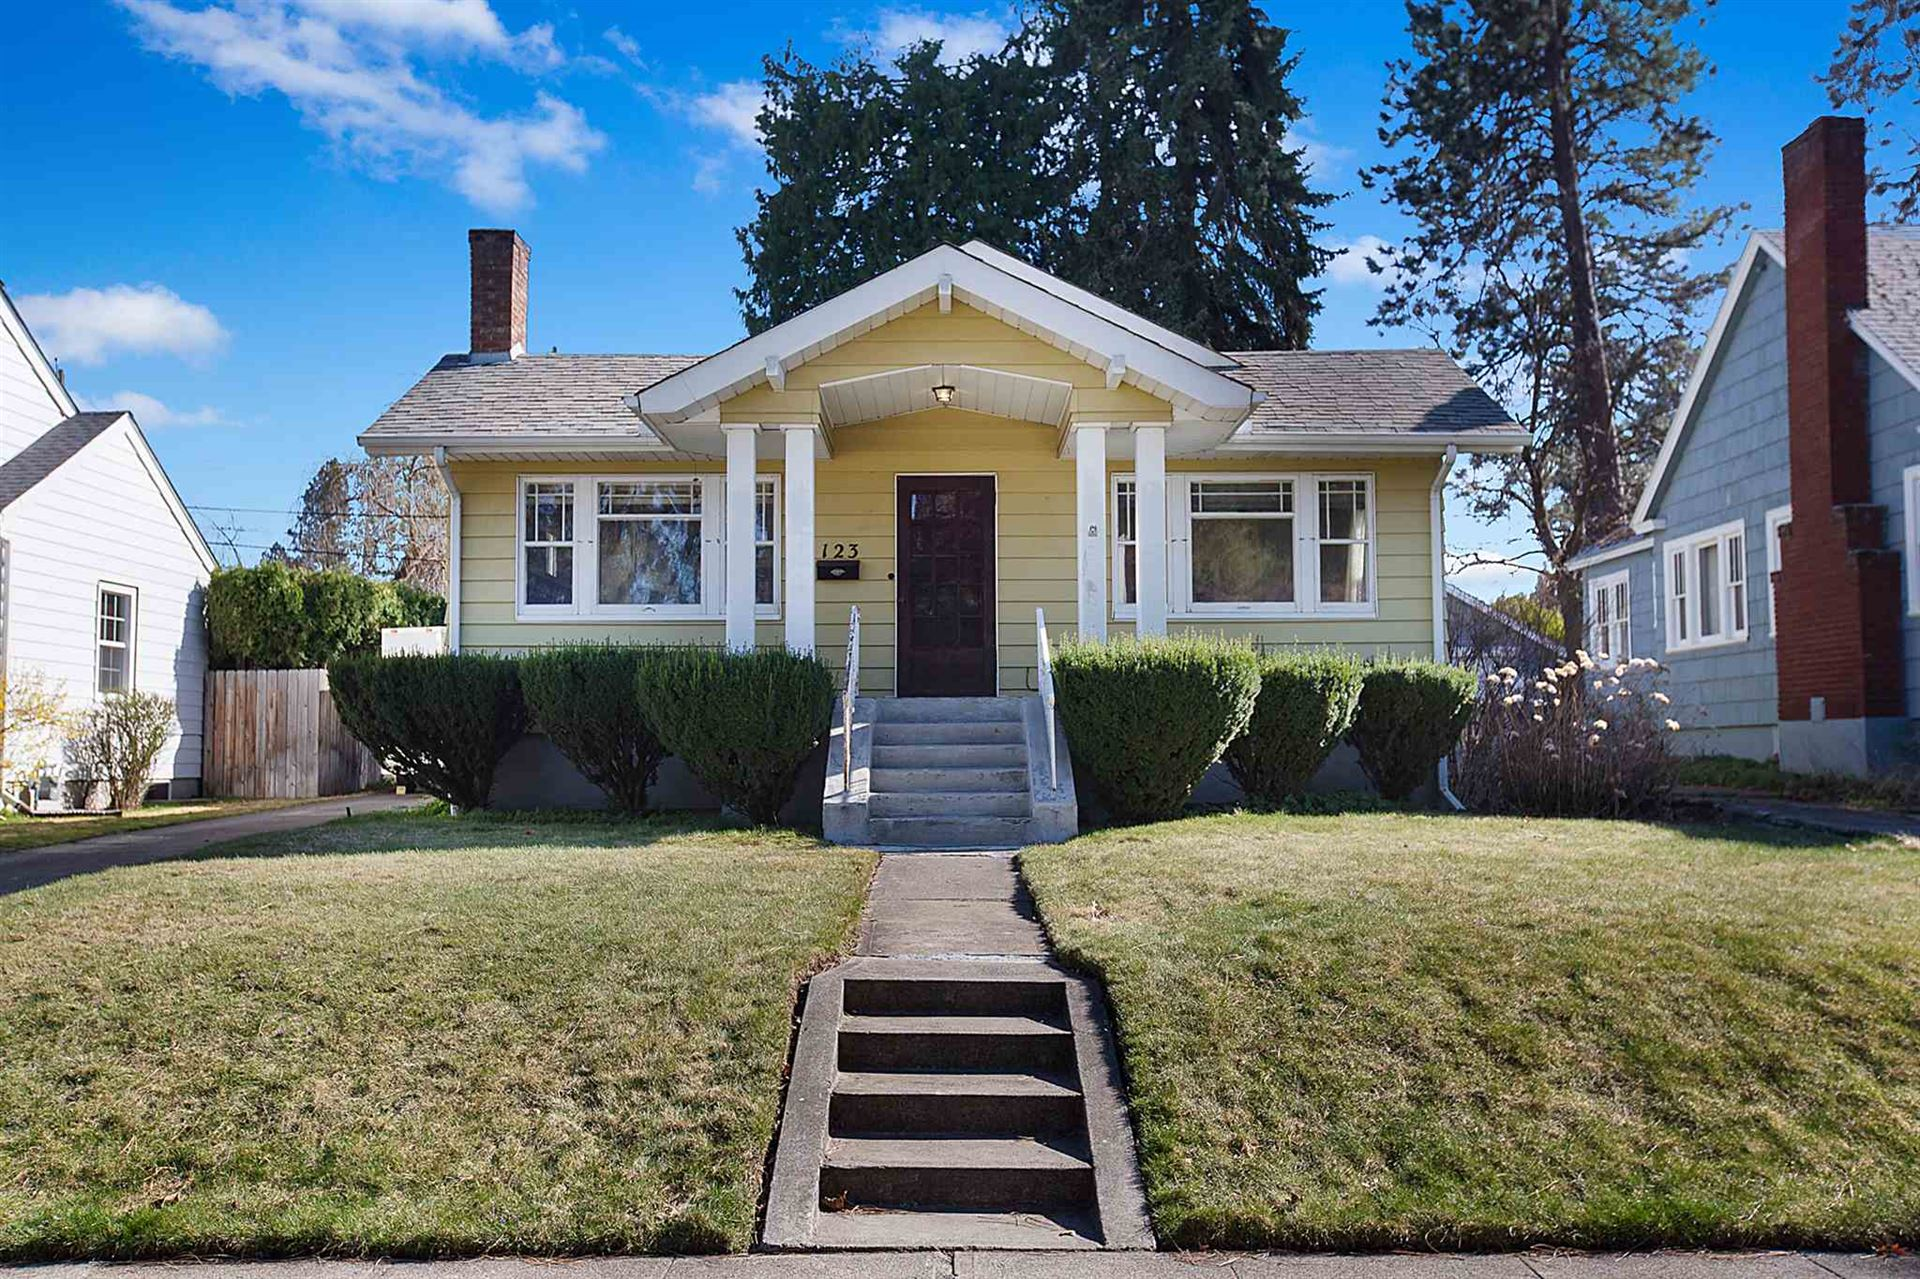 123 W 28th Ave, Spokane, WA 99203 - #: 202114134